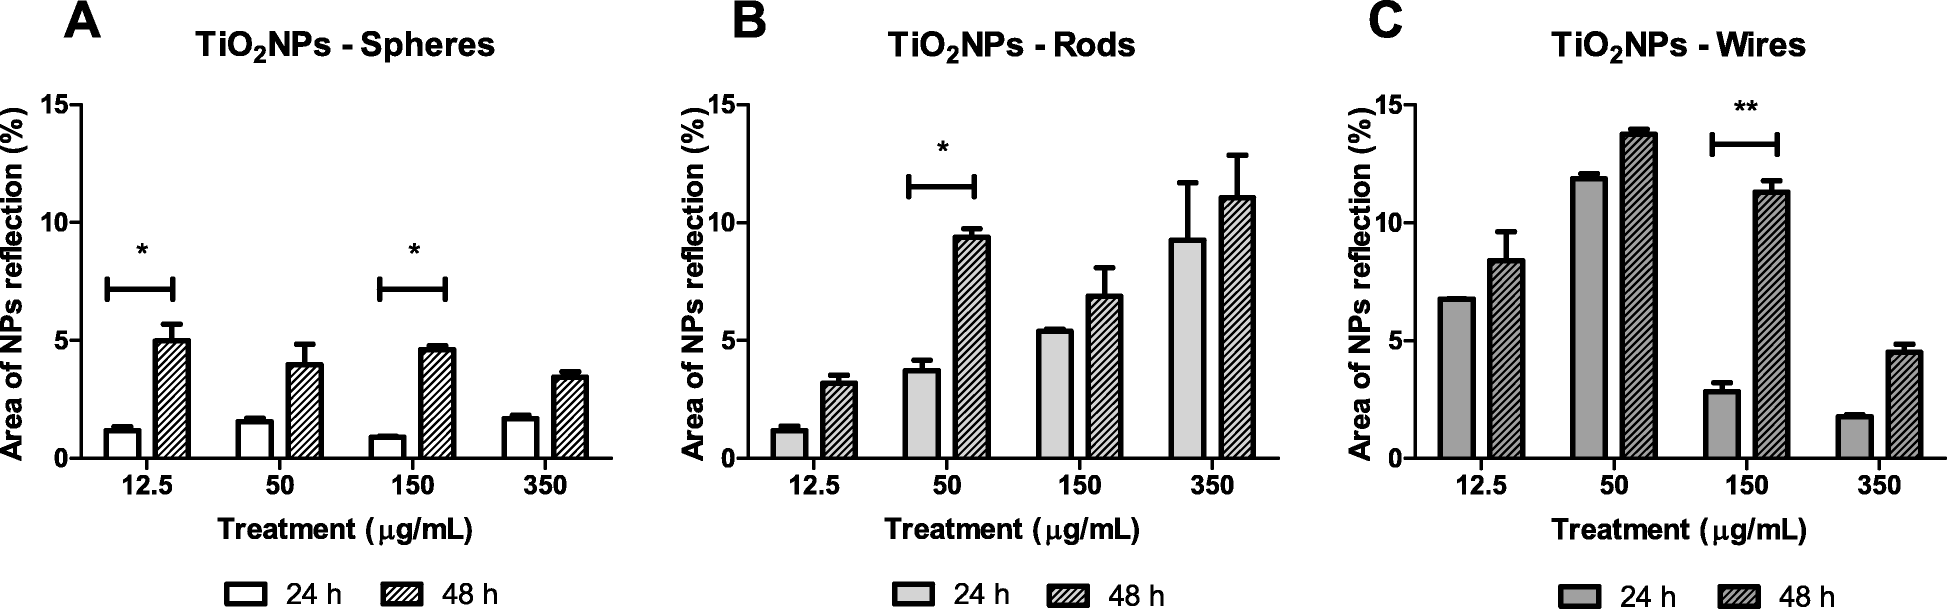 Effects Of Differently Shaped Tio2nps Nanospheres Nanorods And Pettibone Wire Diagram Fig 8